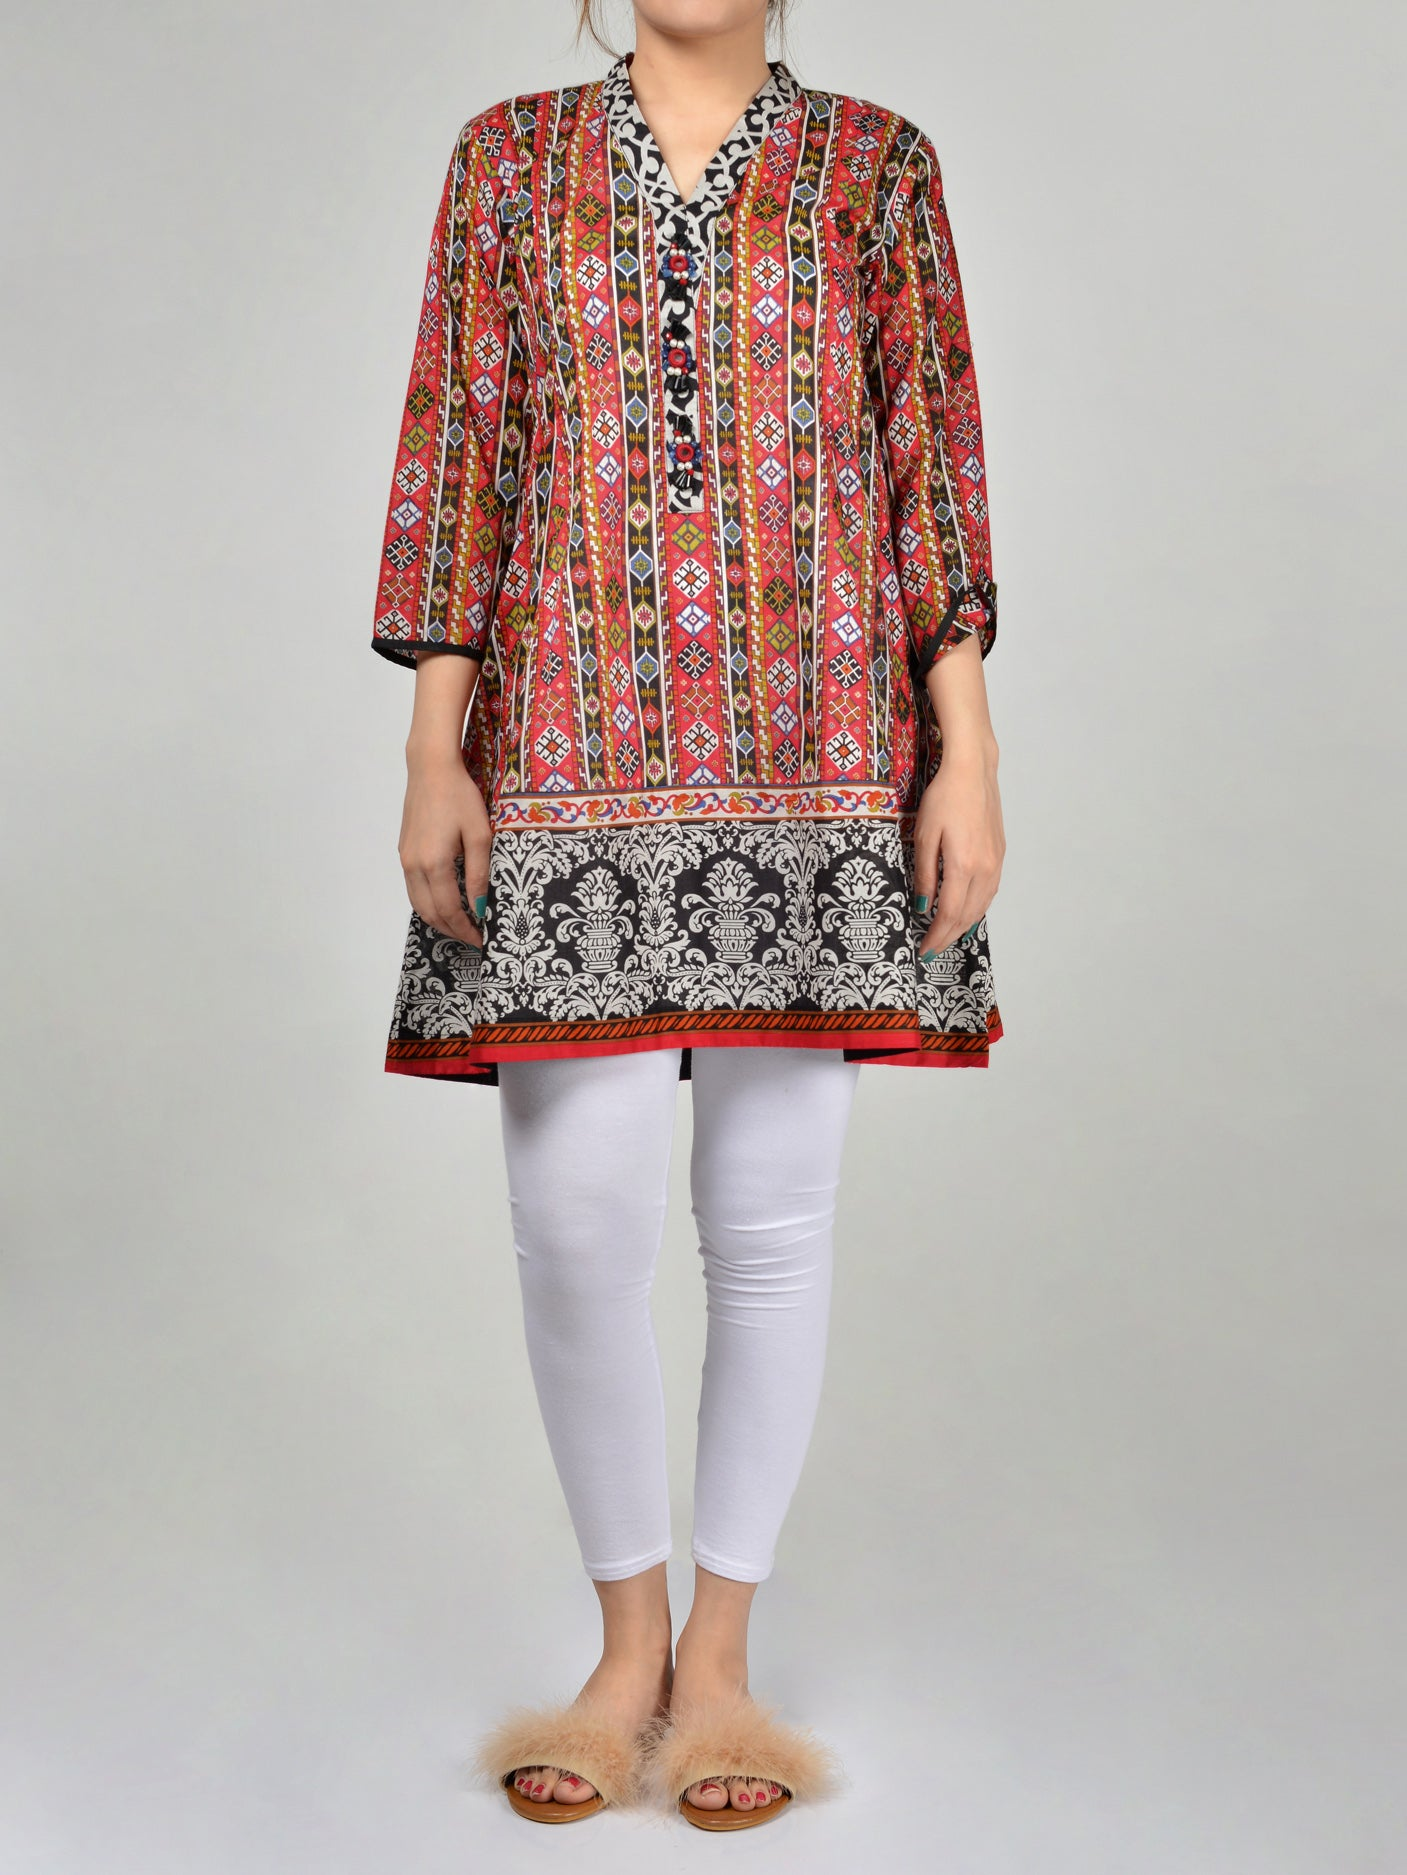 Buy Printed Frock P0160 Online in Pakistan | Limelight.pk